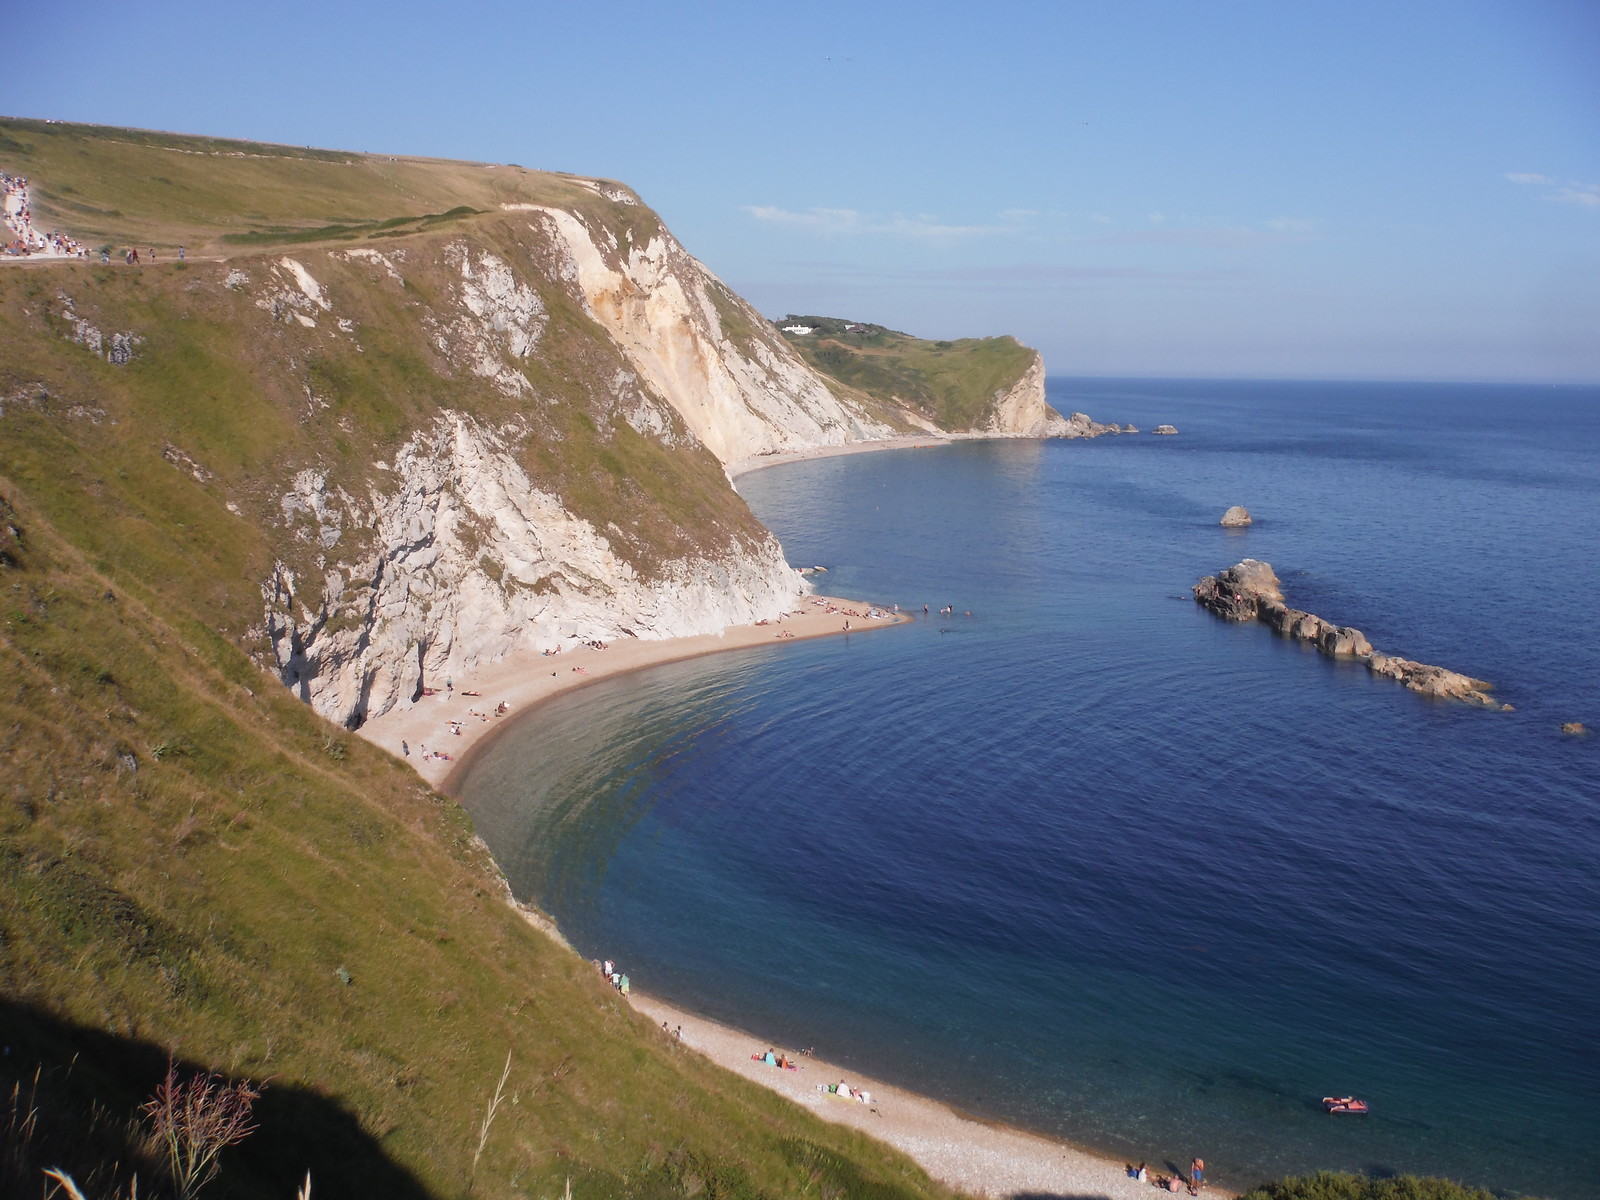 Man o' War Bay towards Dungy Head SWC Walk 54 - Lulworth Cove Circular (via Tyneham and Durdle Door)